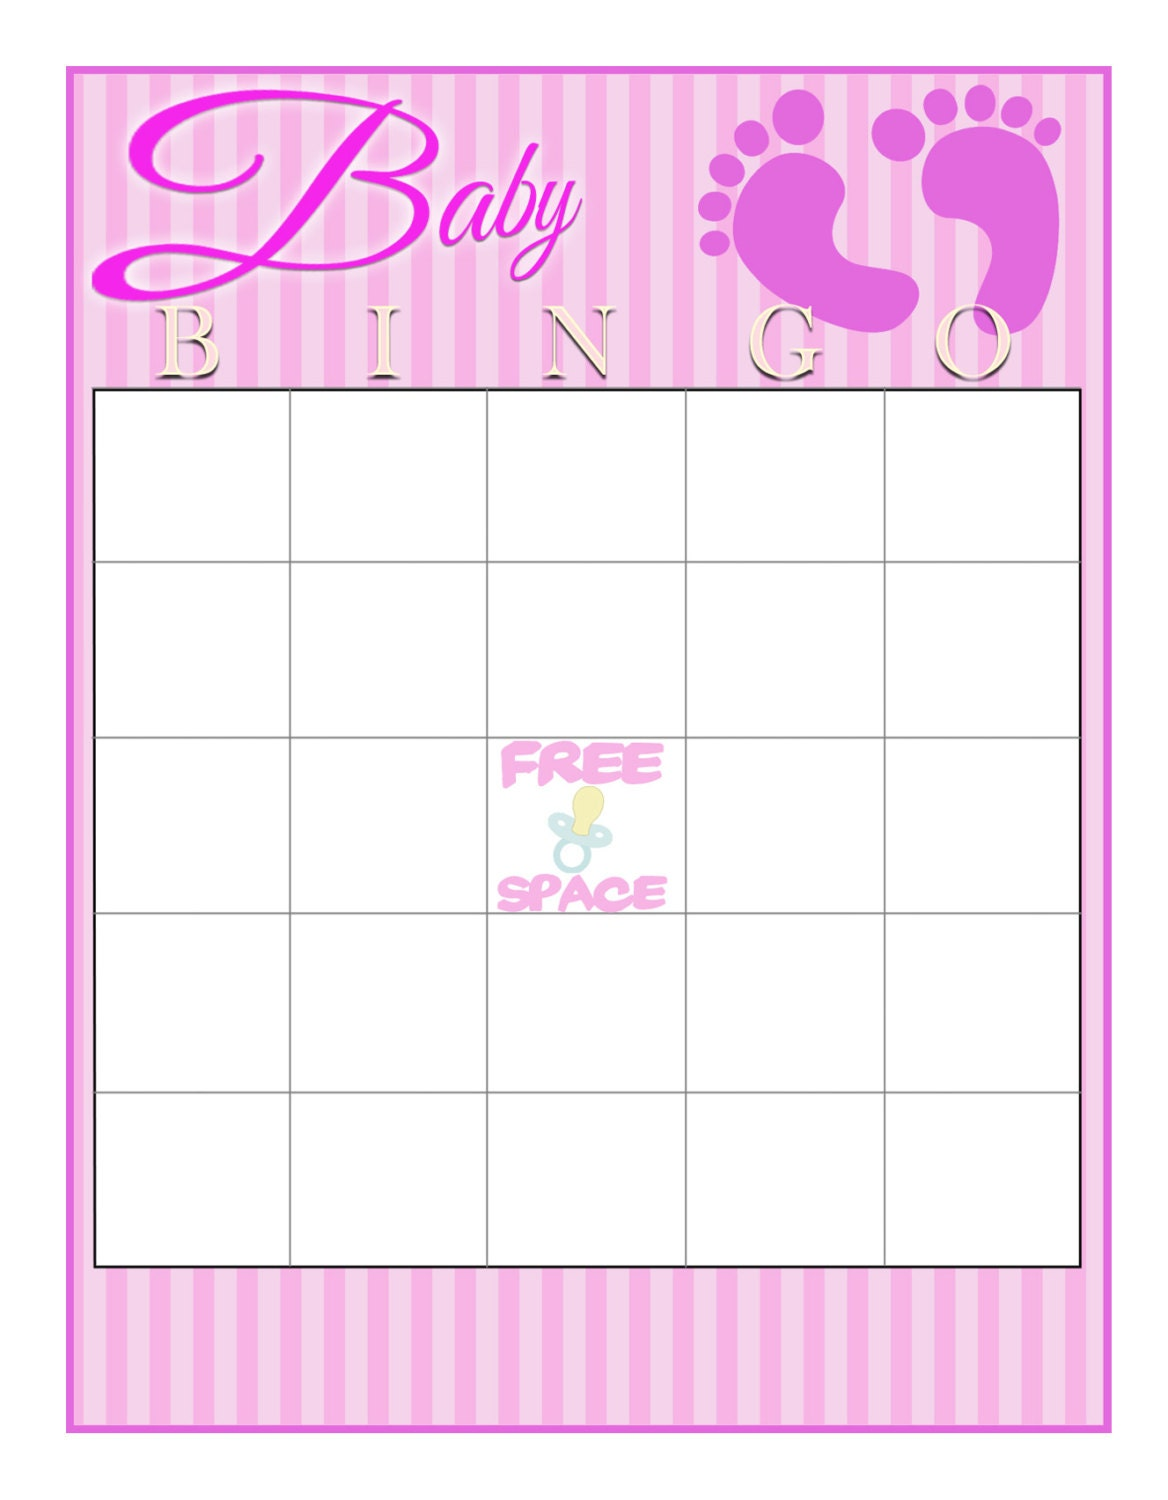 Free Blank Baby Shower Bingo Cards To Print